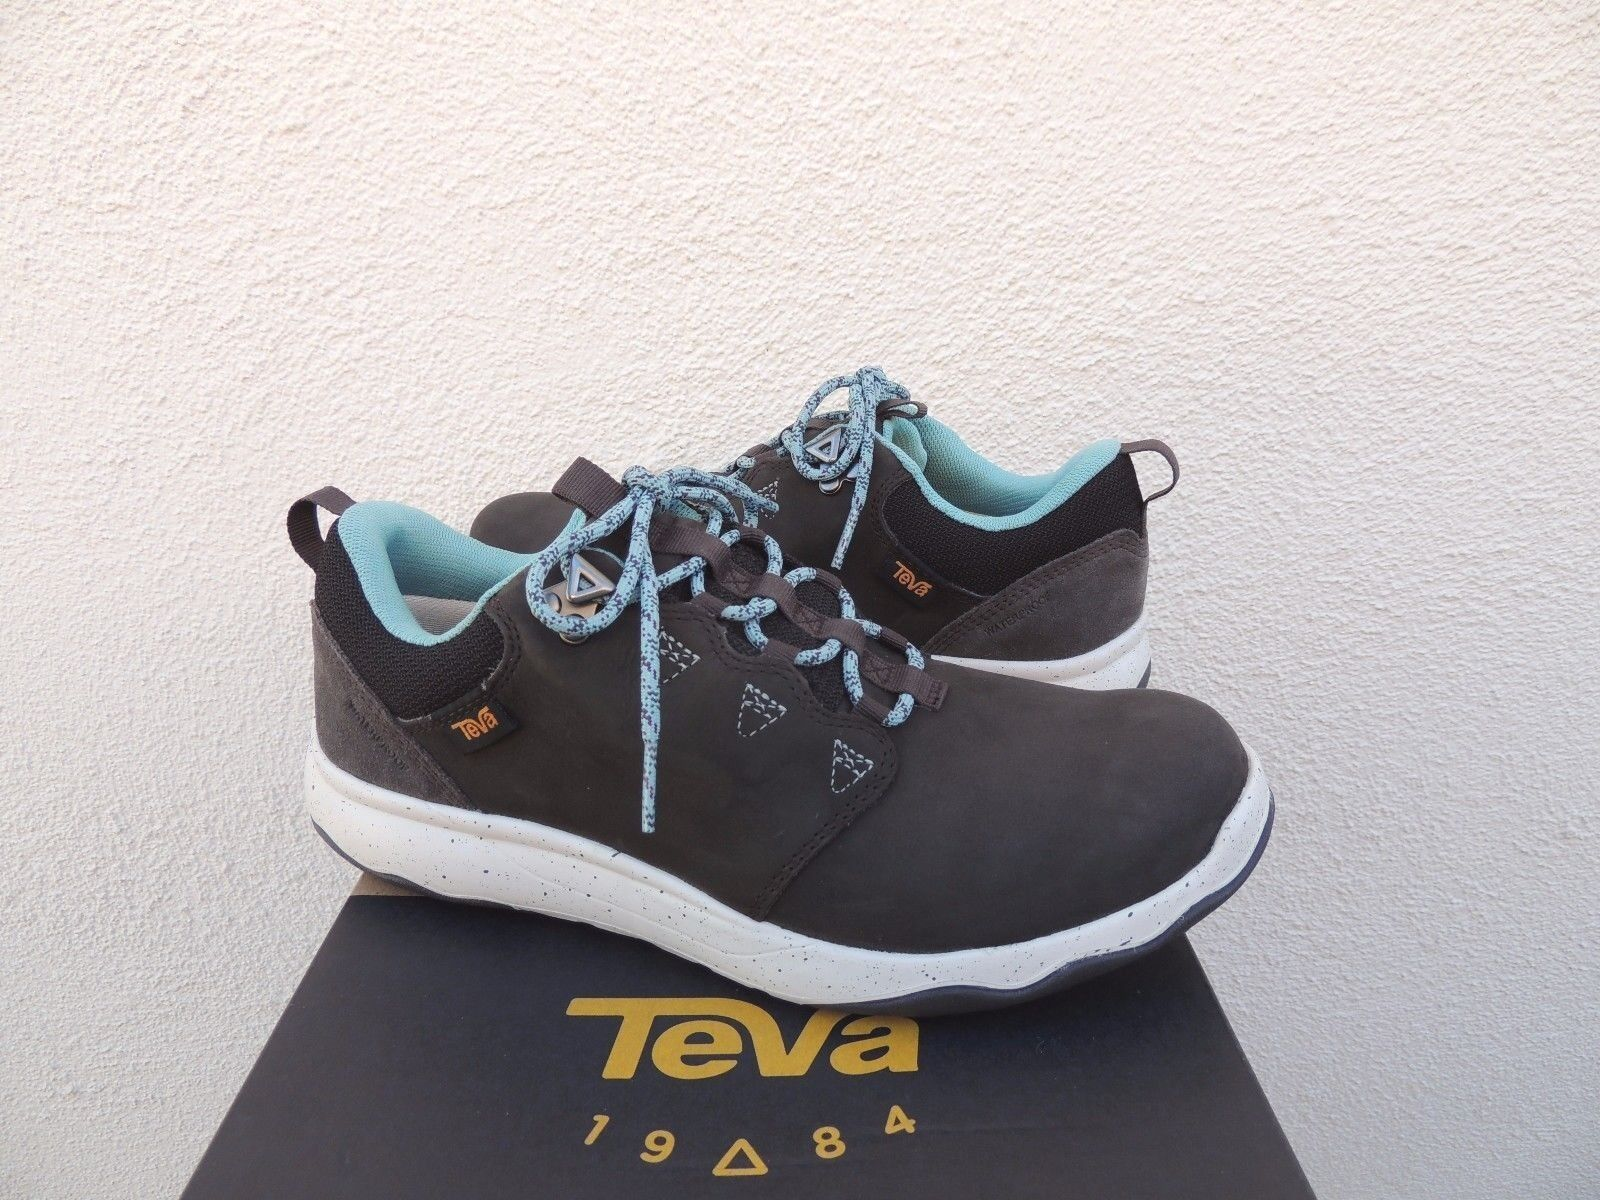 TEVA BLACK OLIVE ARROWOOD LUX WP LEATHER SNEAKER BOOTS, US 6  EUR 37 NIB